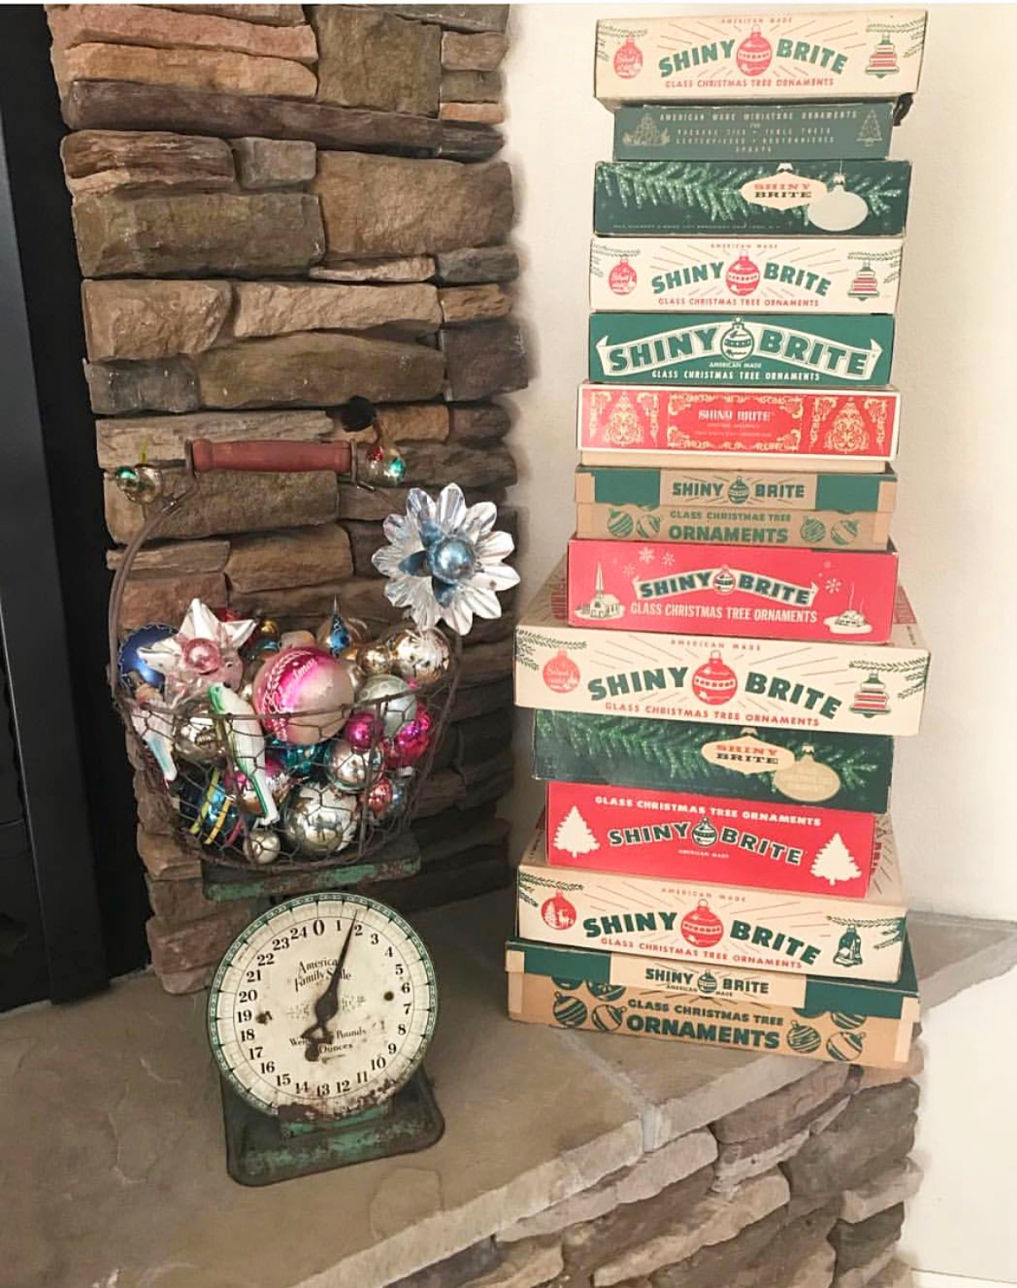 Shiny Brite Decorating Ideas - the most creative ideas for displaying Christmas ornaments including the original boxes kellyelko.com #vintagechristmas #christmasornaments #christmaswreath #christmasdecor #christmasdecorating #shinybrites #vintageornaments #ornaments